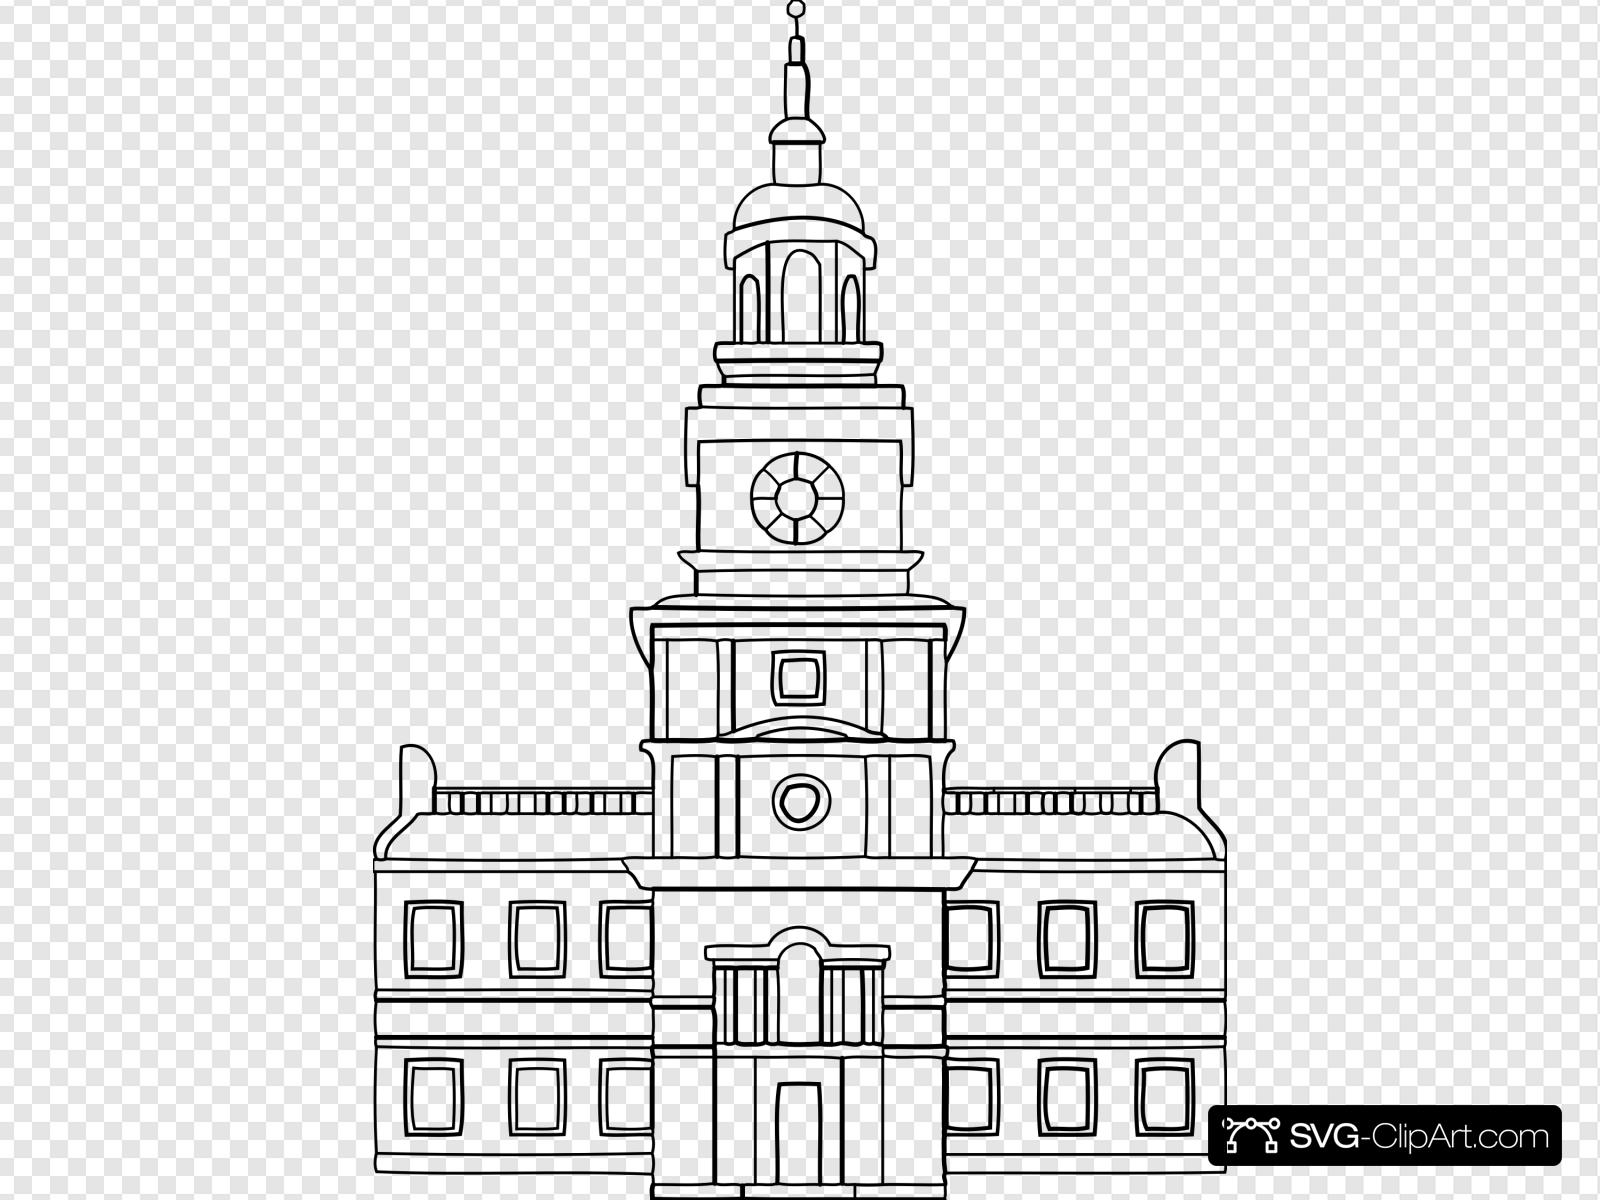 Independence hall clipart clip art Independence Hall Clip art, Icon and SVG - SVG Clipart clip art